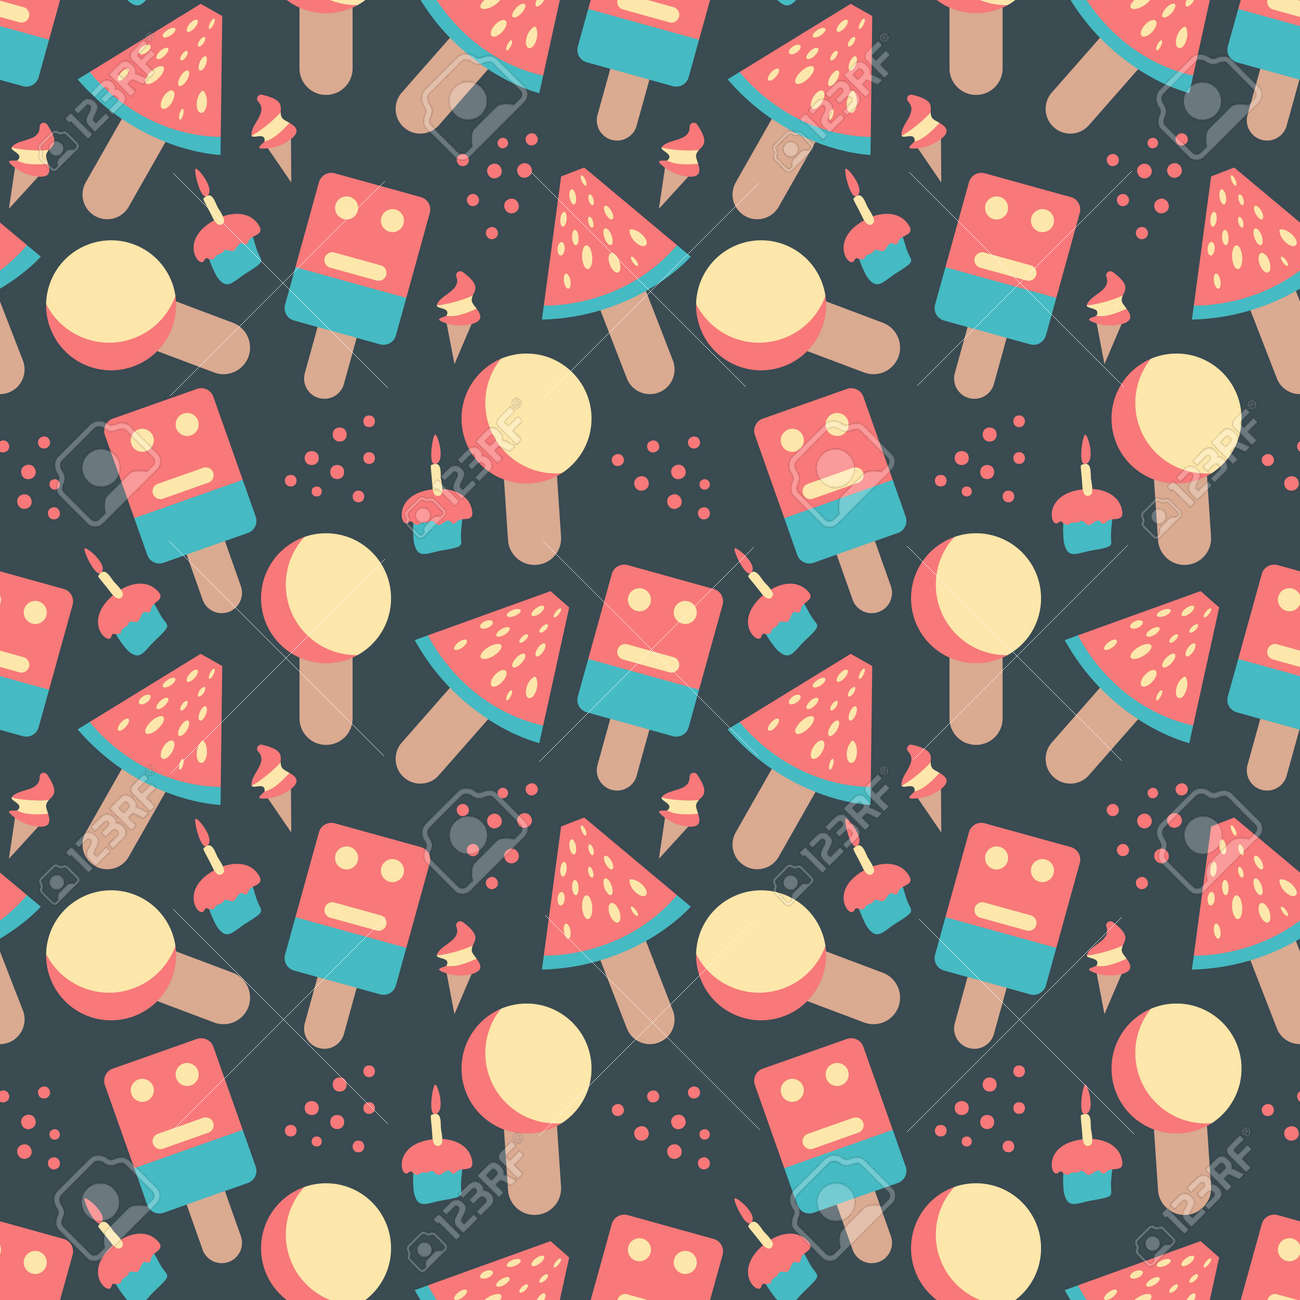 Seamless background pattern with many different colored and isolated sweets lollipops and ice cream vector illustration - 168741464